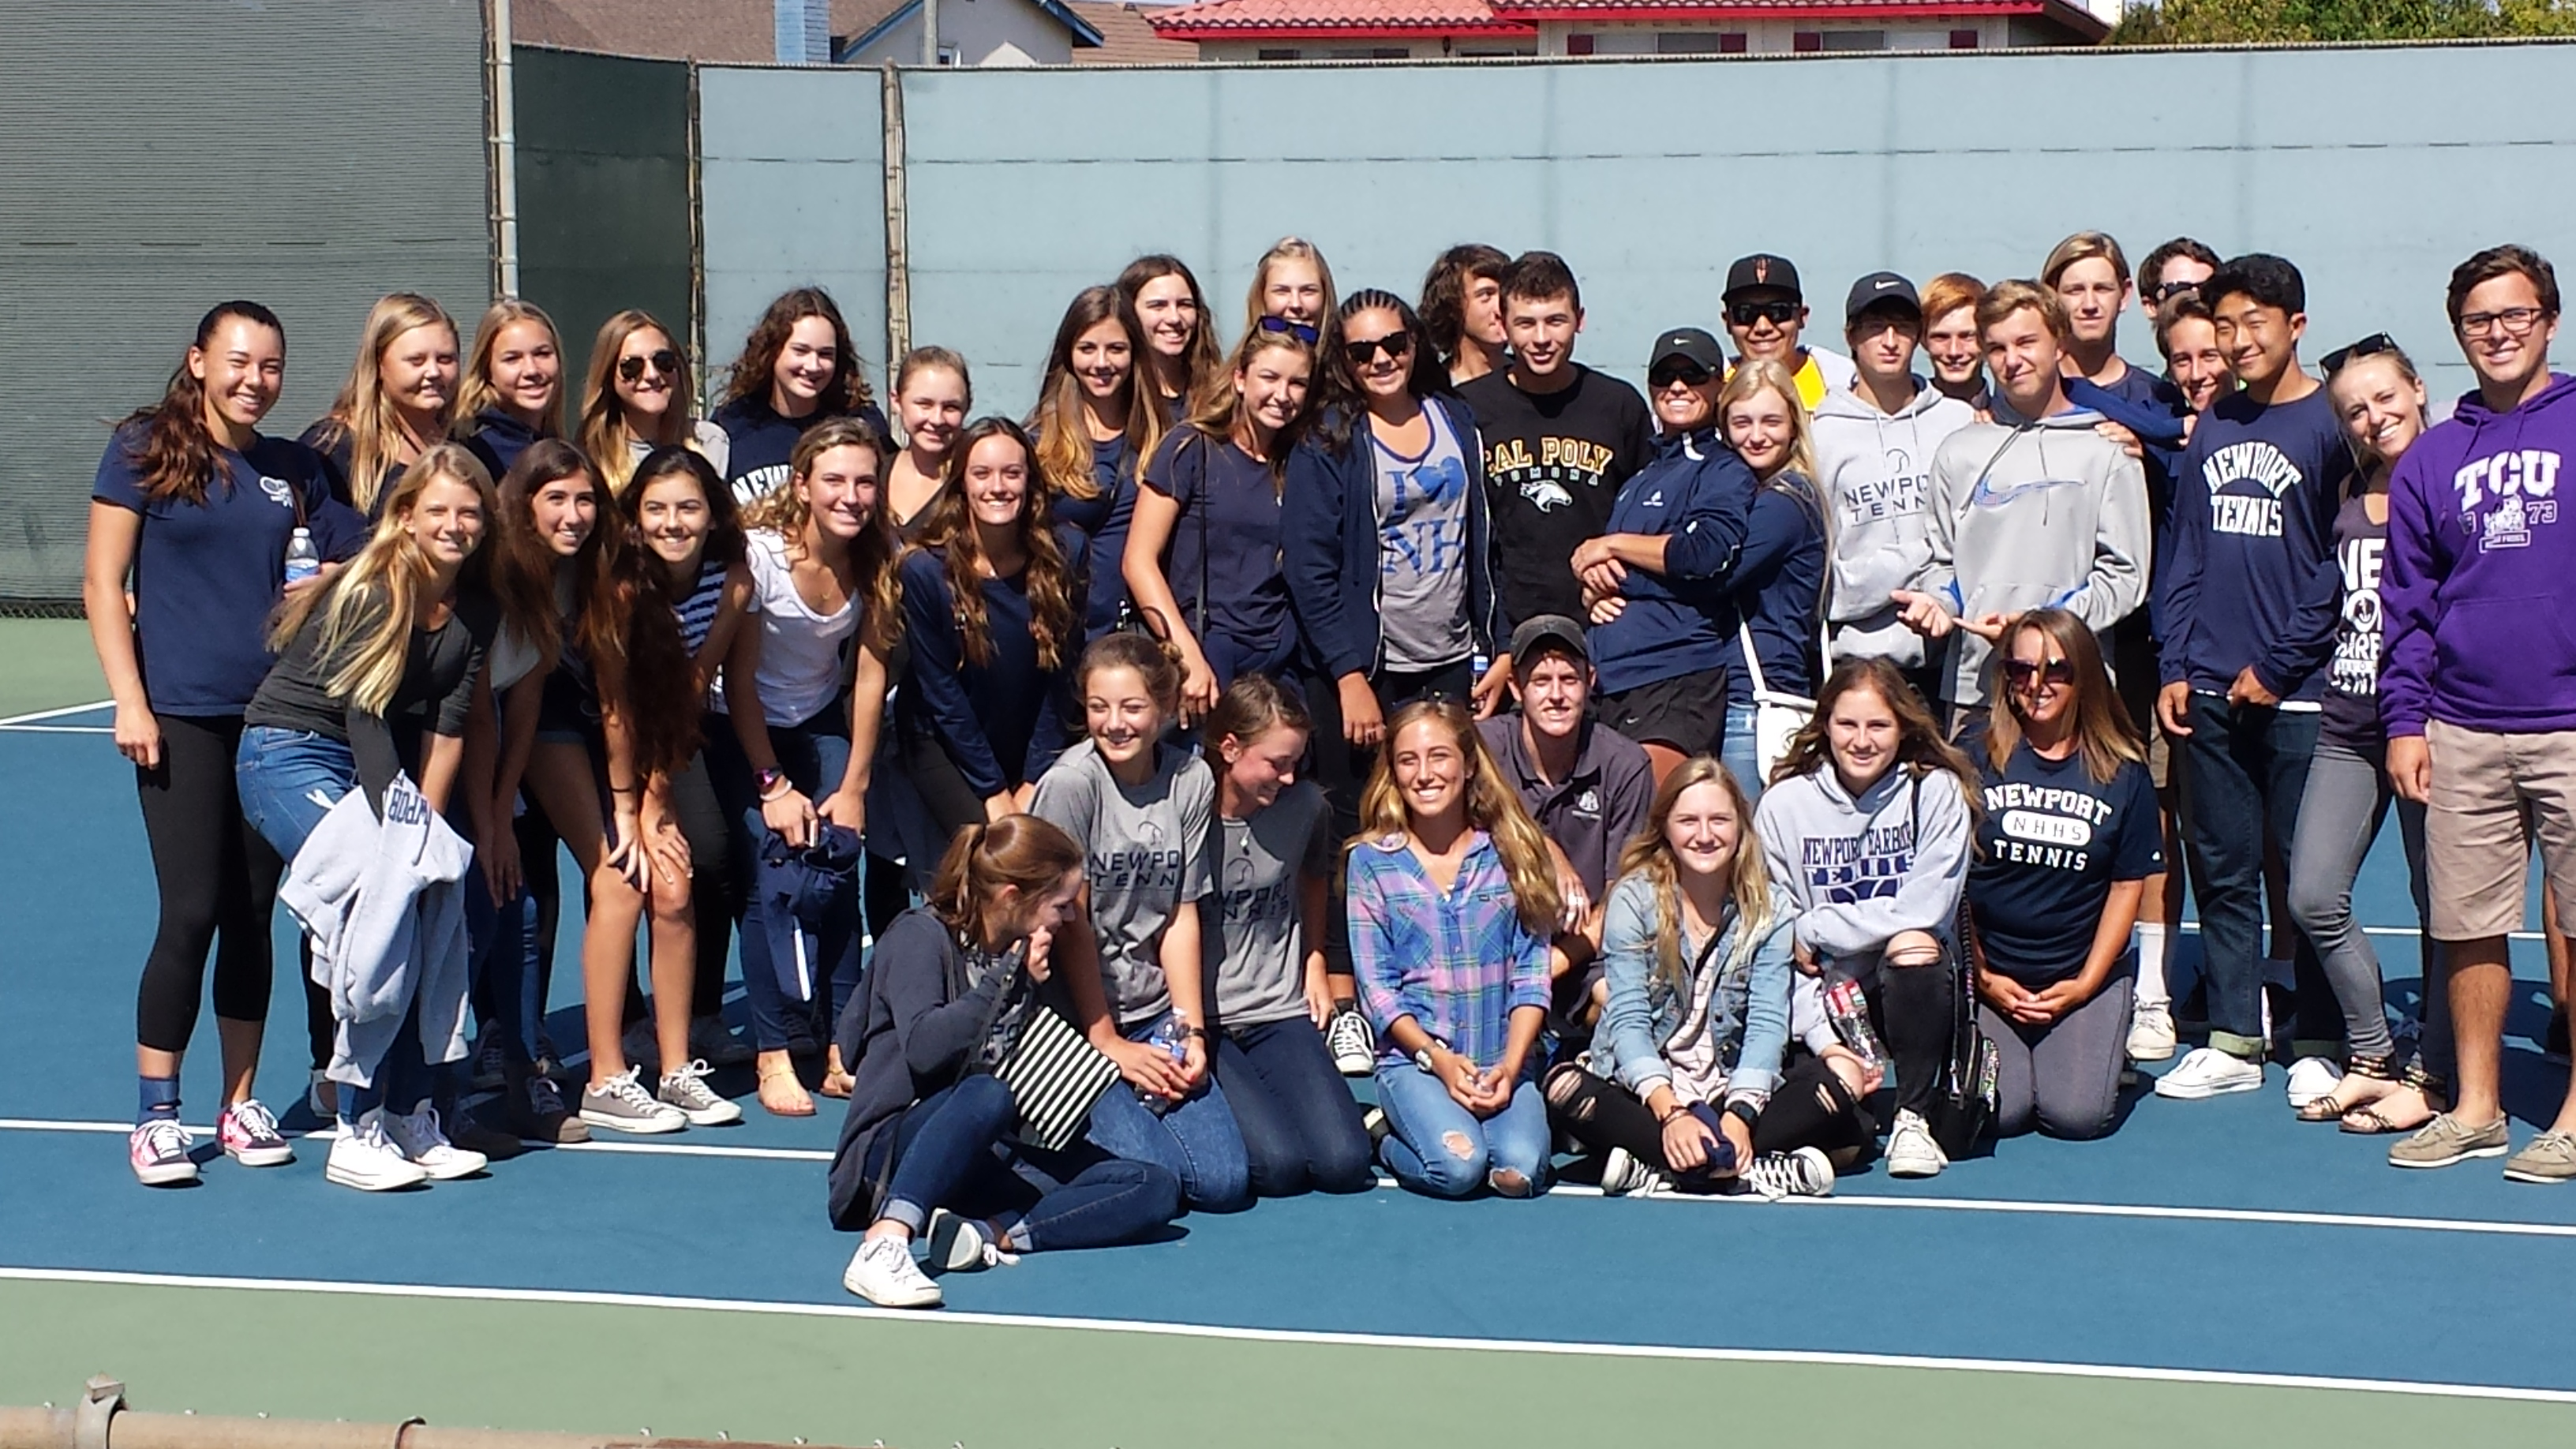 NHHS Tennis Supports Reese Stalder during his CIF Tournament Play